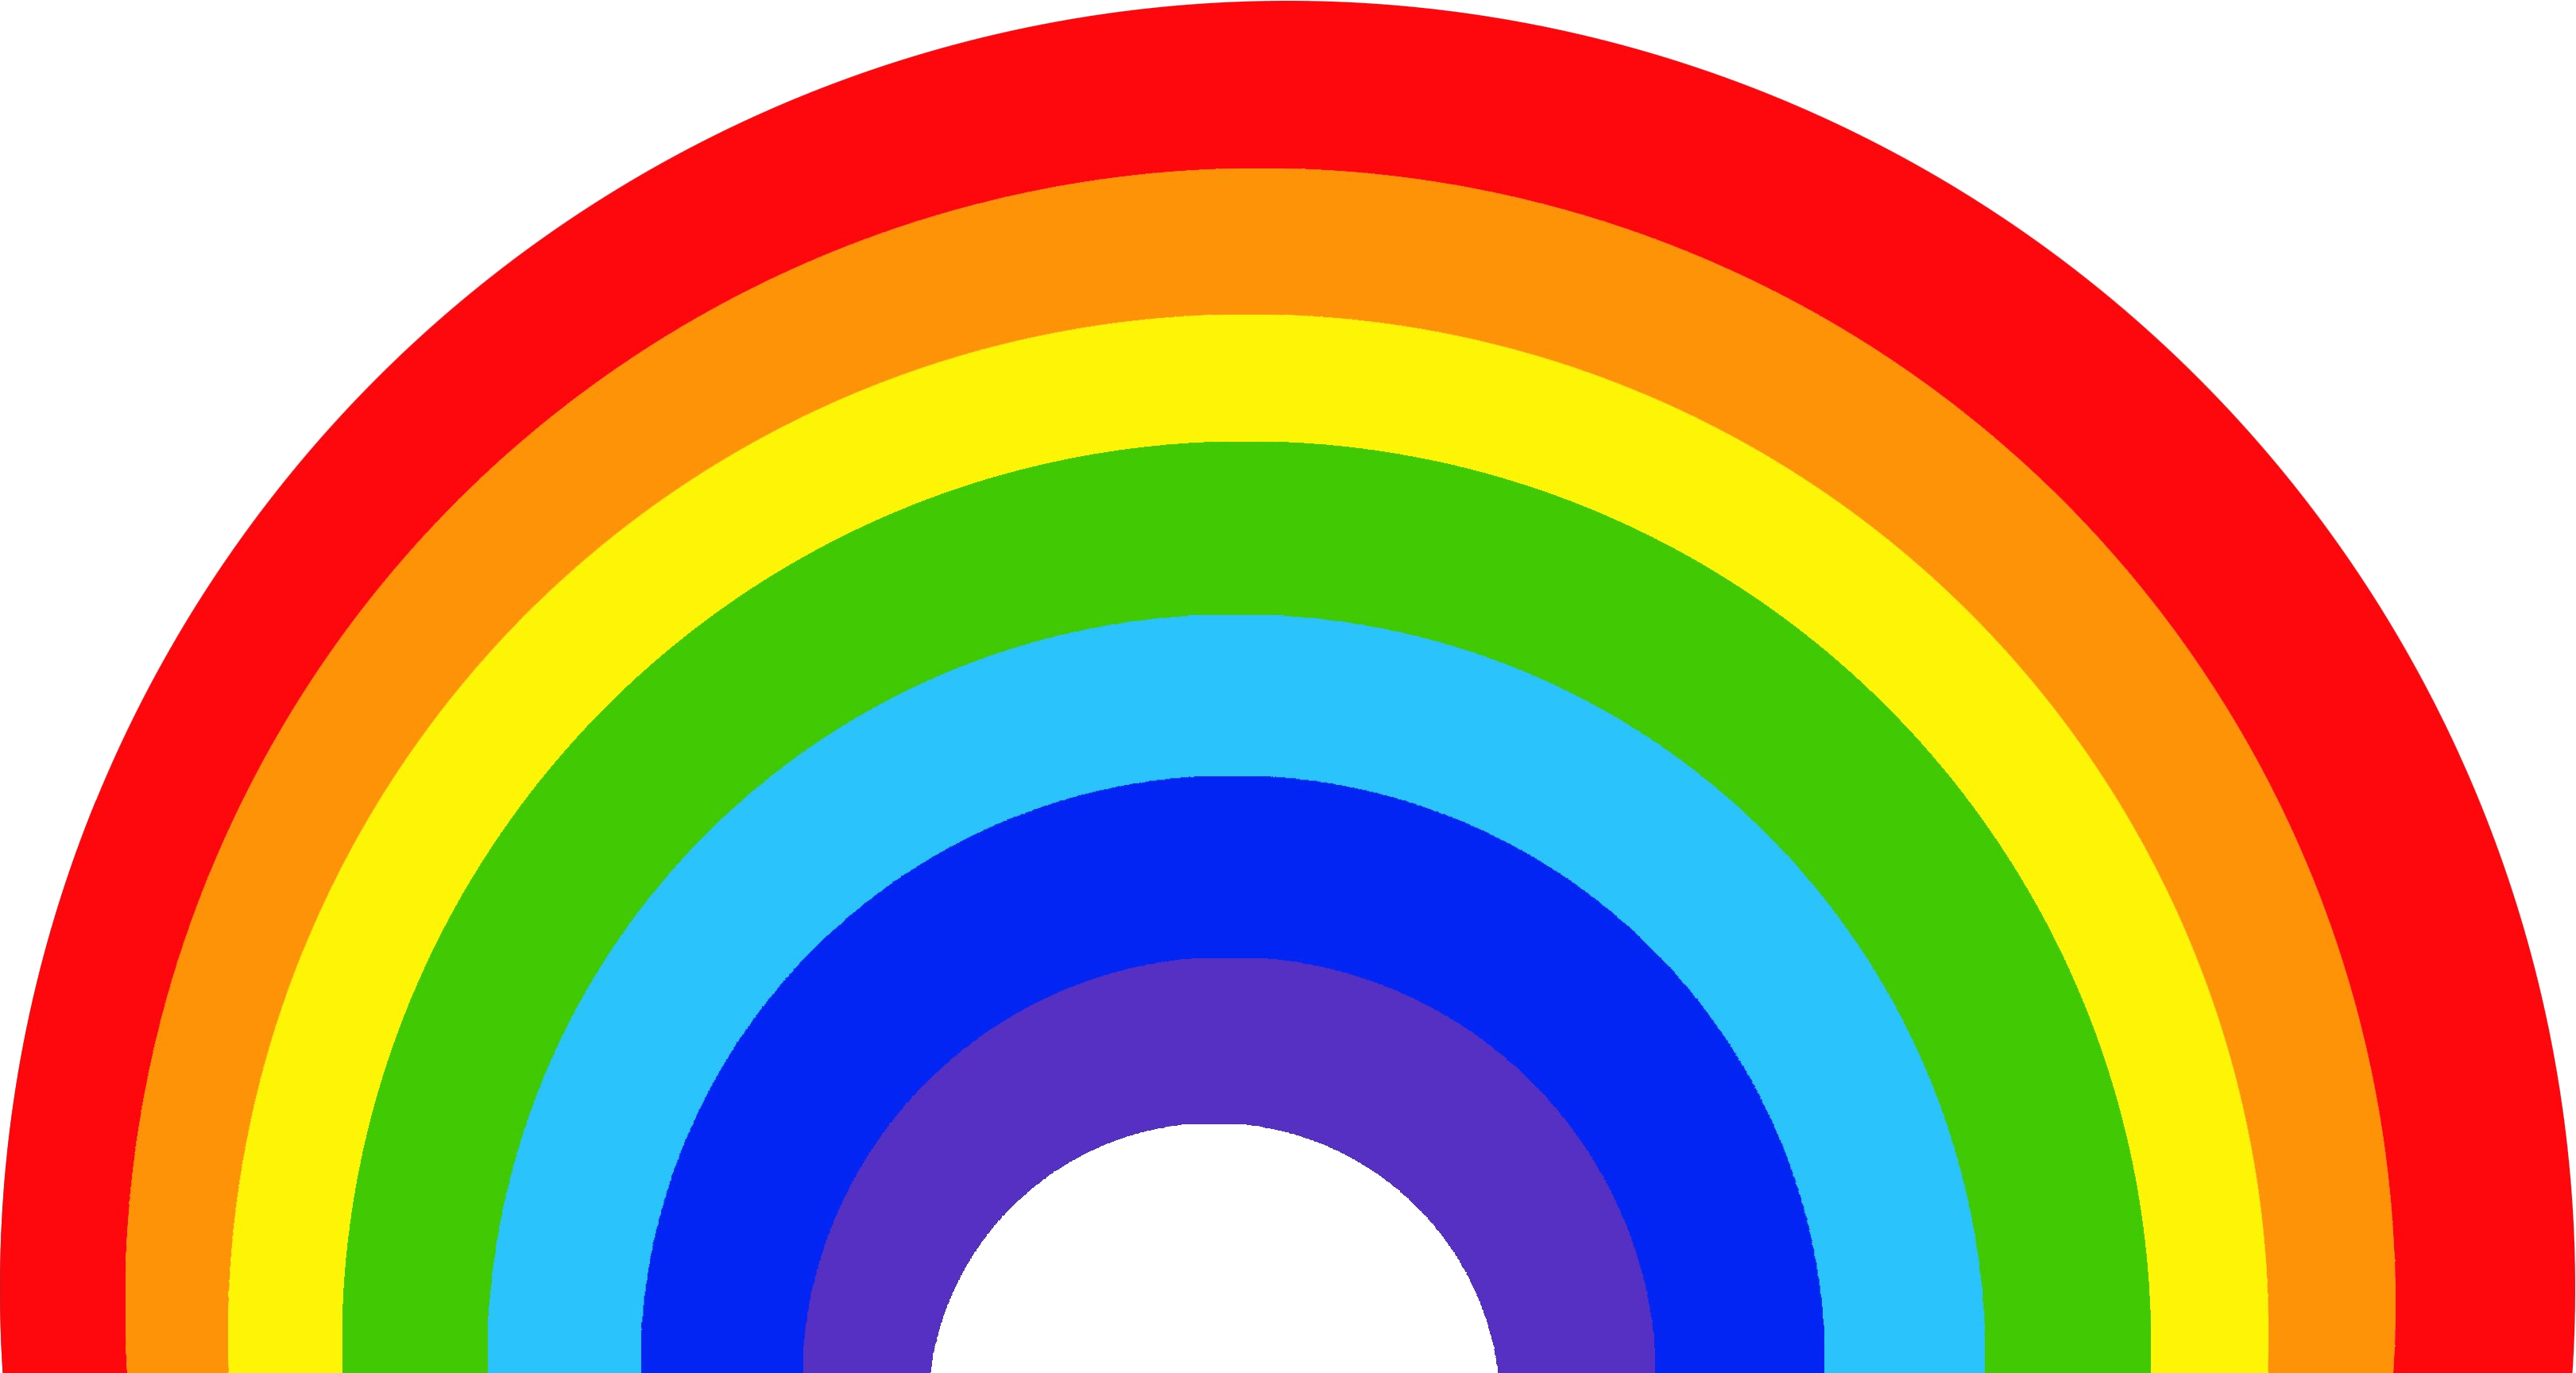 Cartoon rainbow png. Images free download image